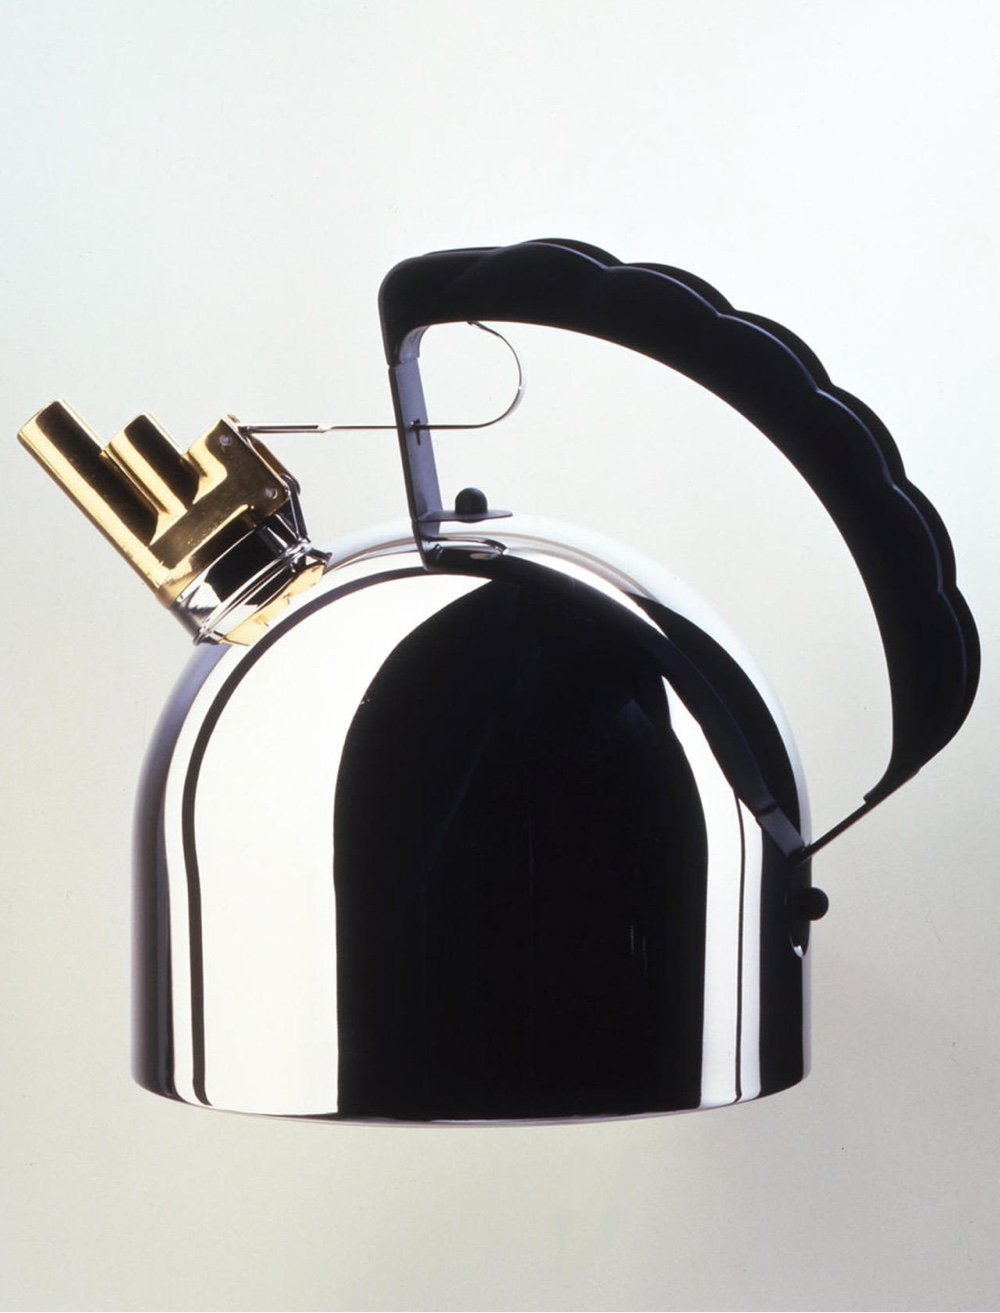 9091 kettle (1983) for Alessi.Image courtesy of Richard Sapper.